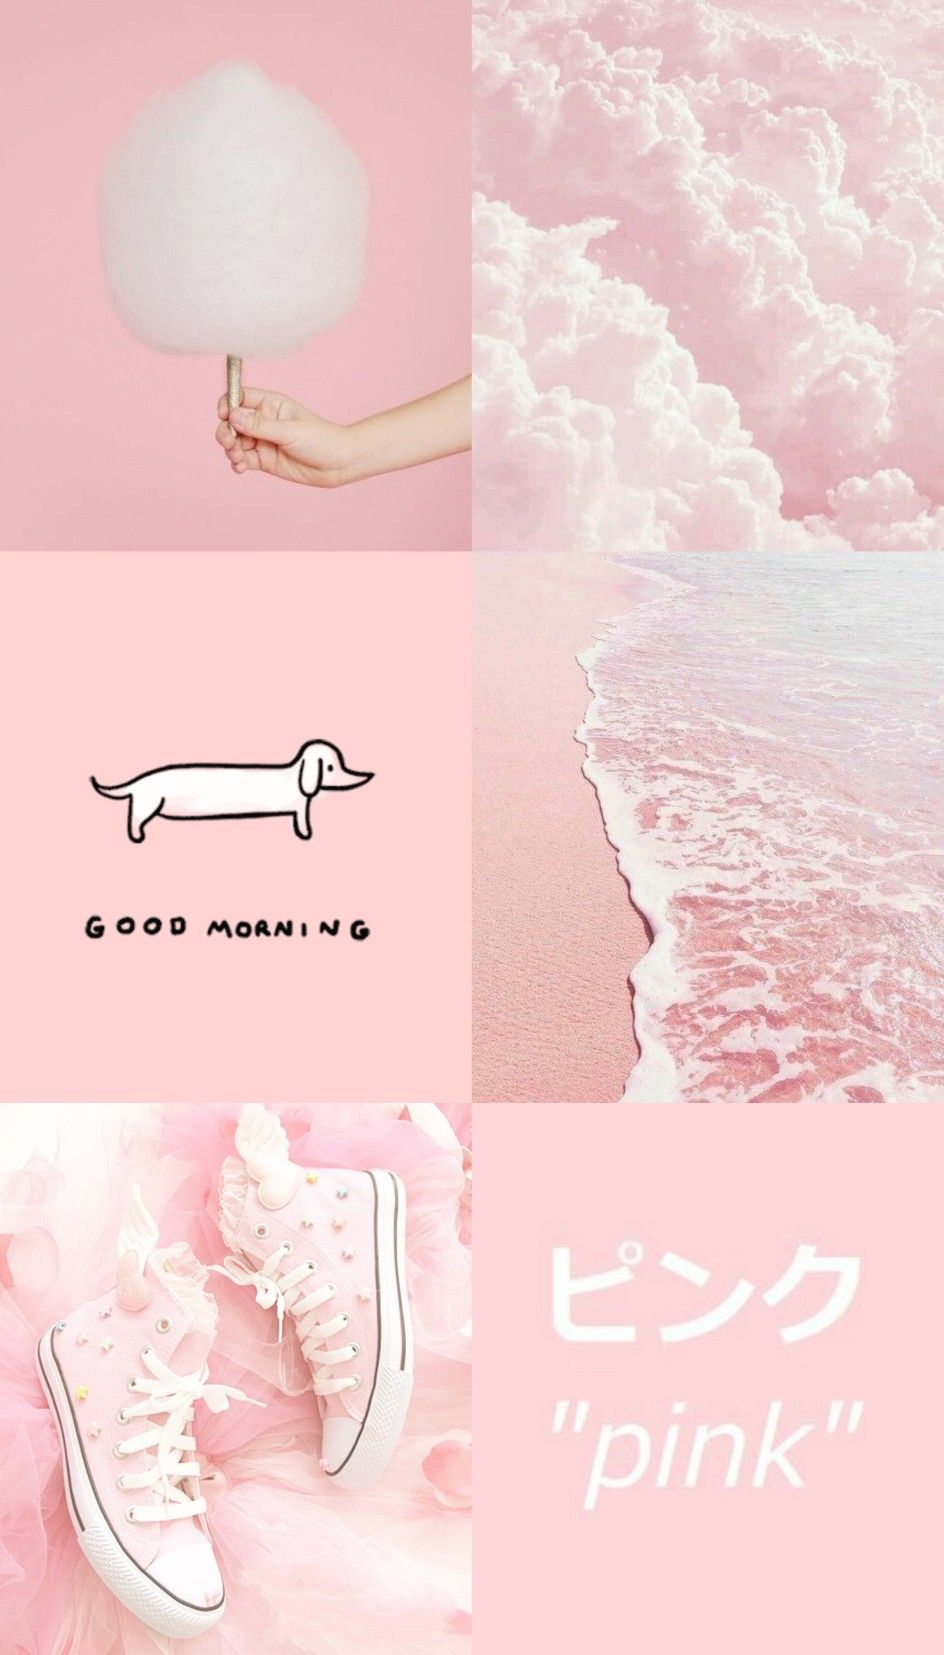 Aesthetic pink wallpaper Gambar